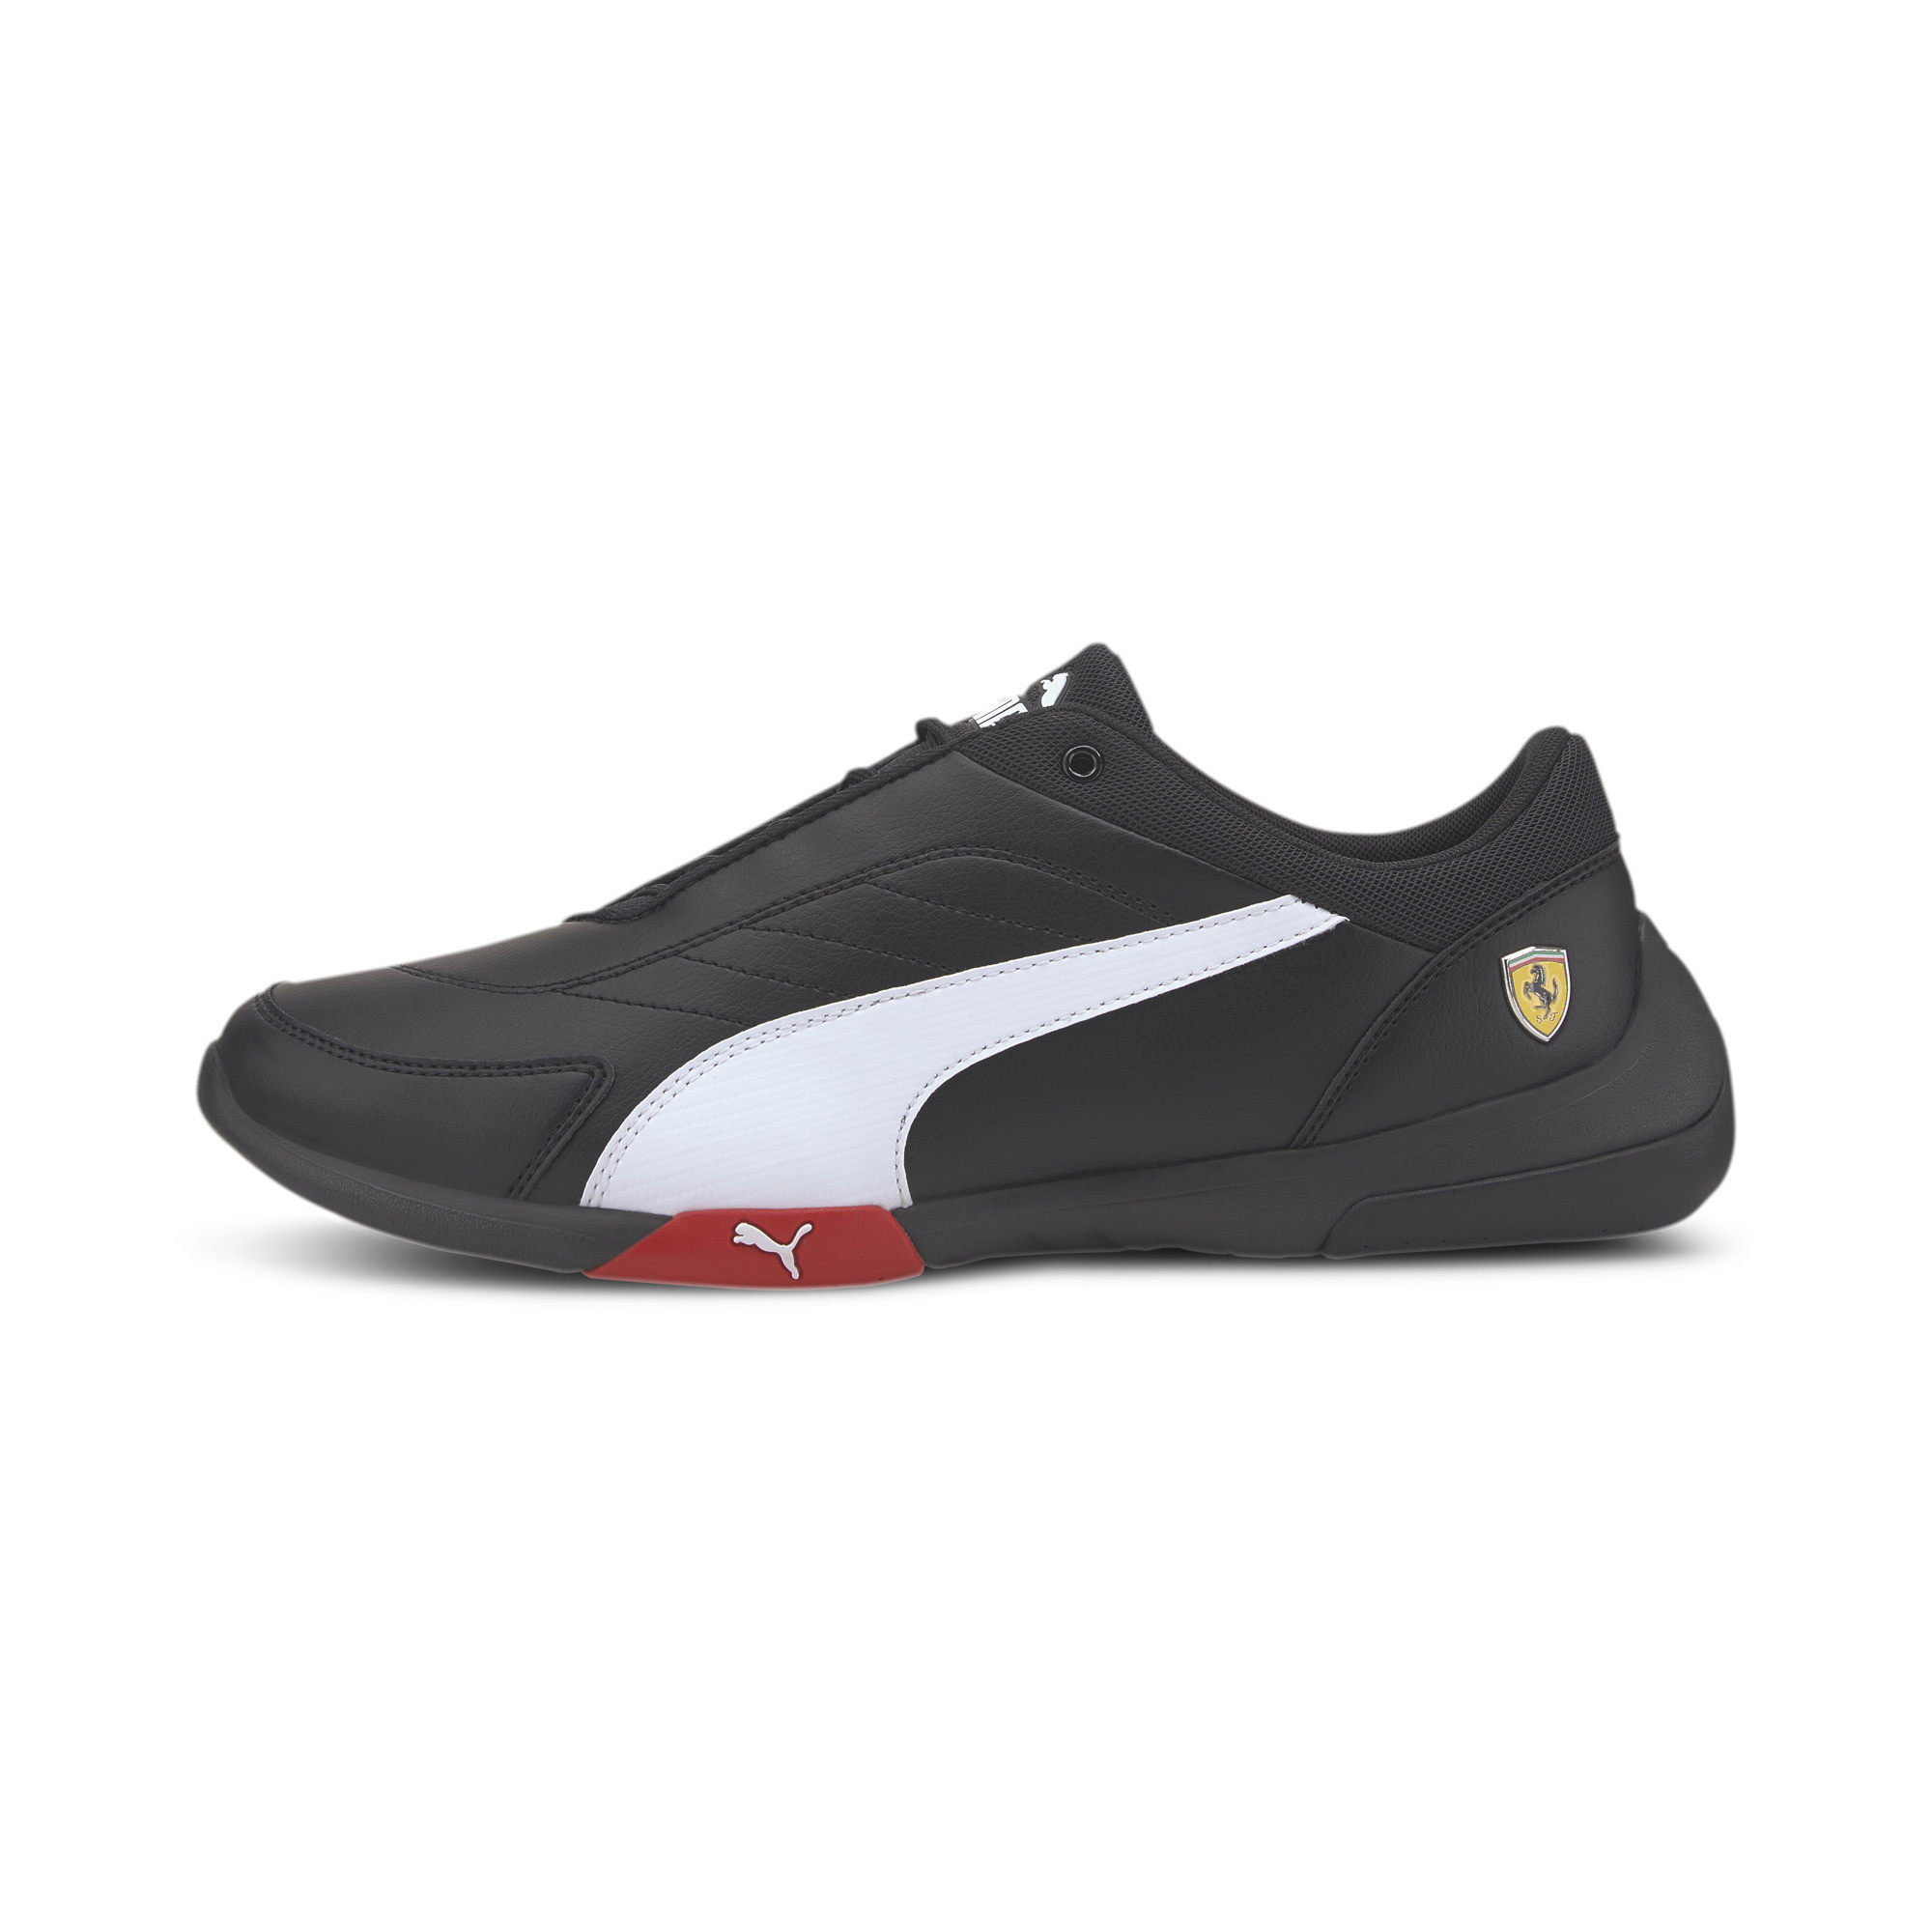 PUMA-Men-039-s-Scuderia-Ferrari-Kart-Cat-III-Motorsport-Shoes thumbnail 4